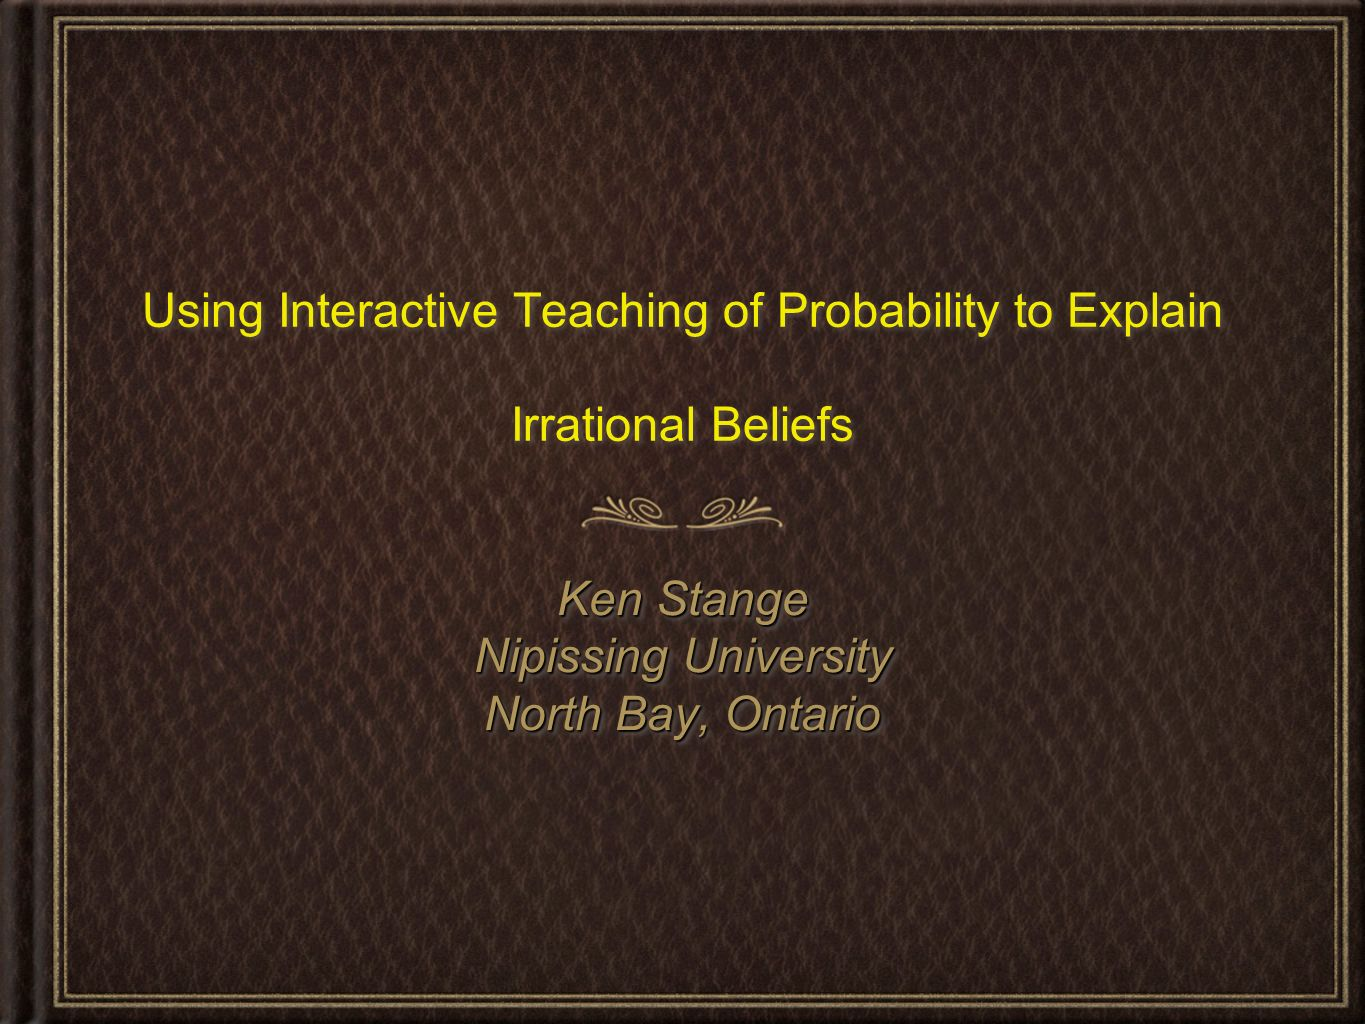 Using Interactive Teaching of Probability to Explain Irrational Beliefs